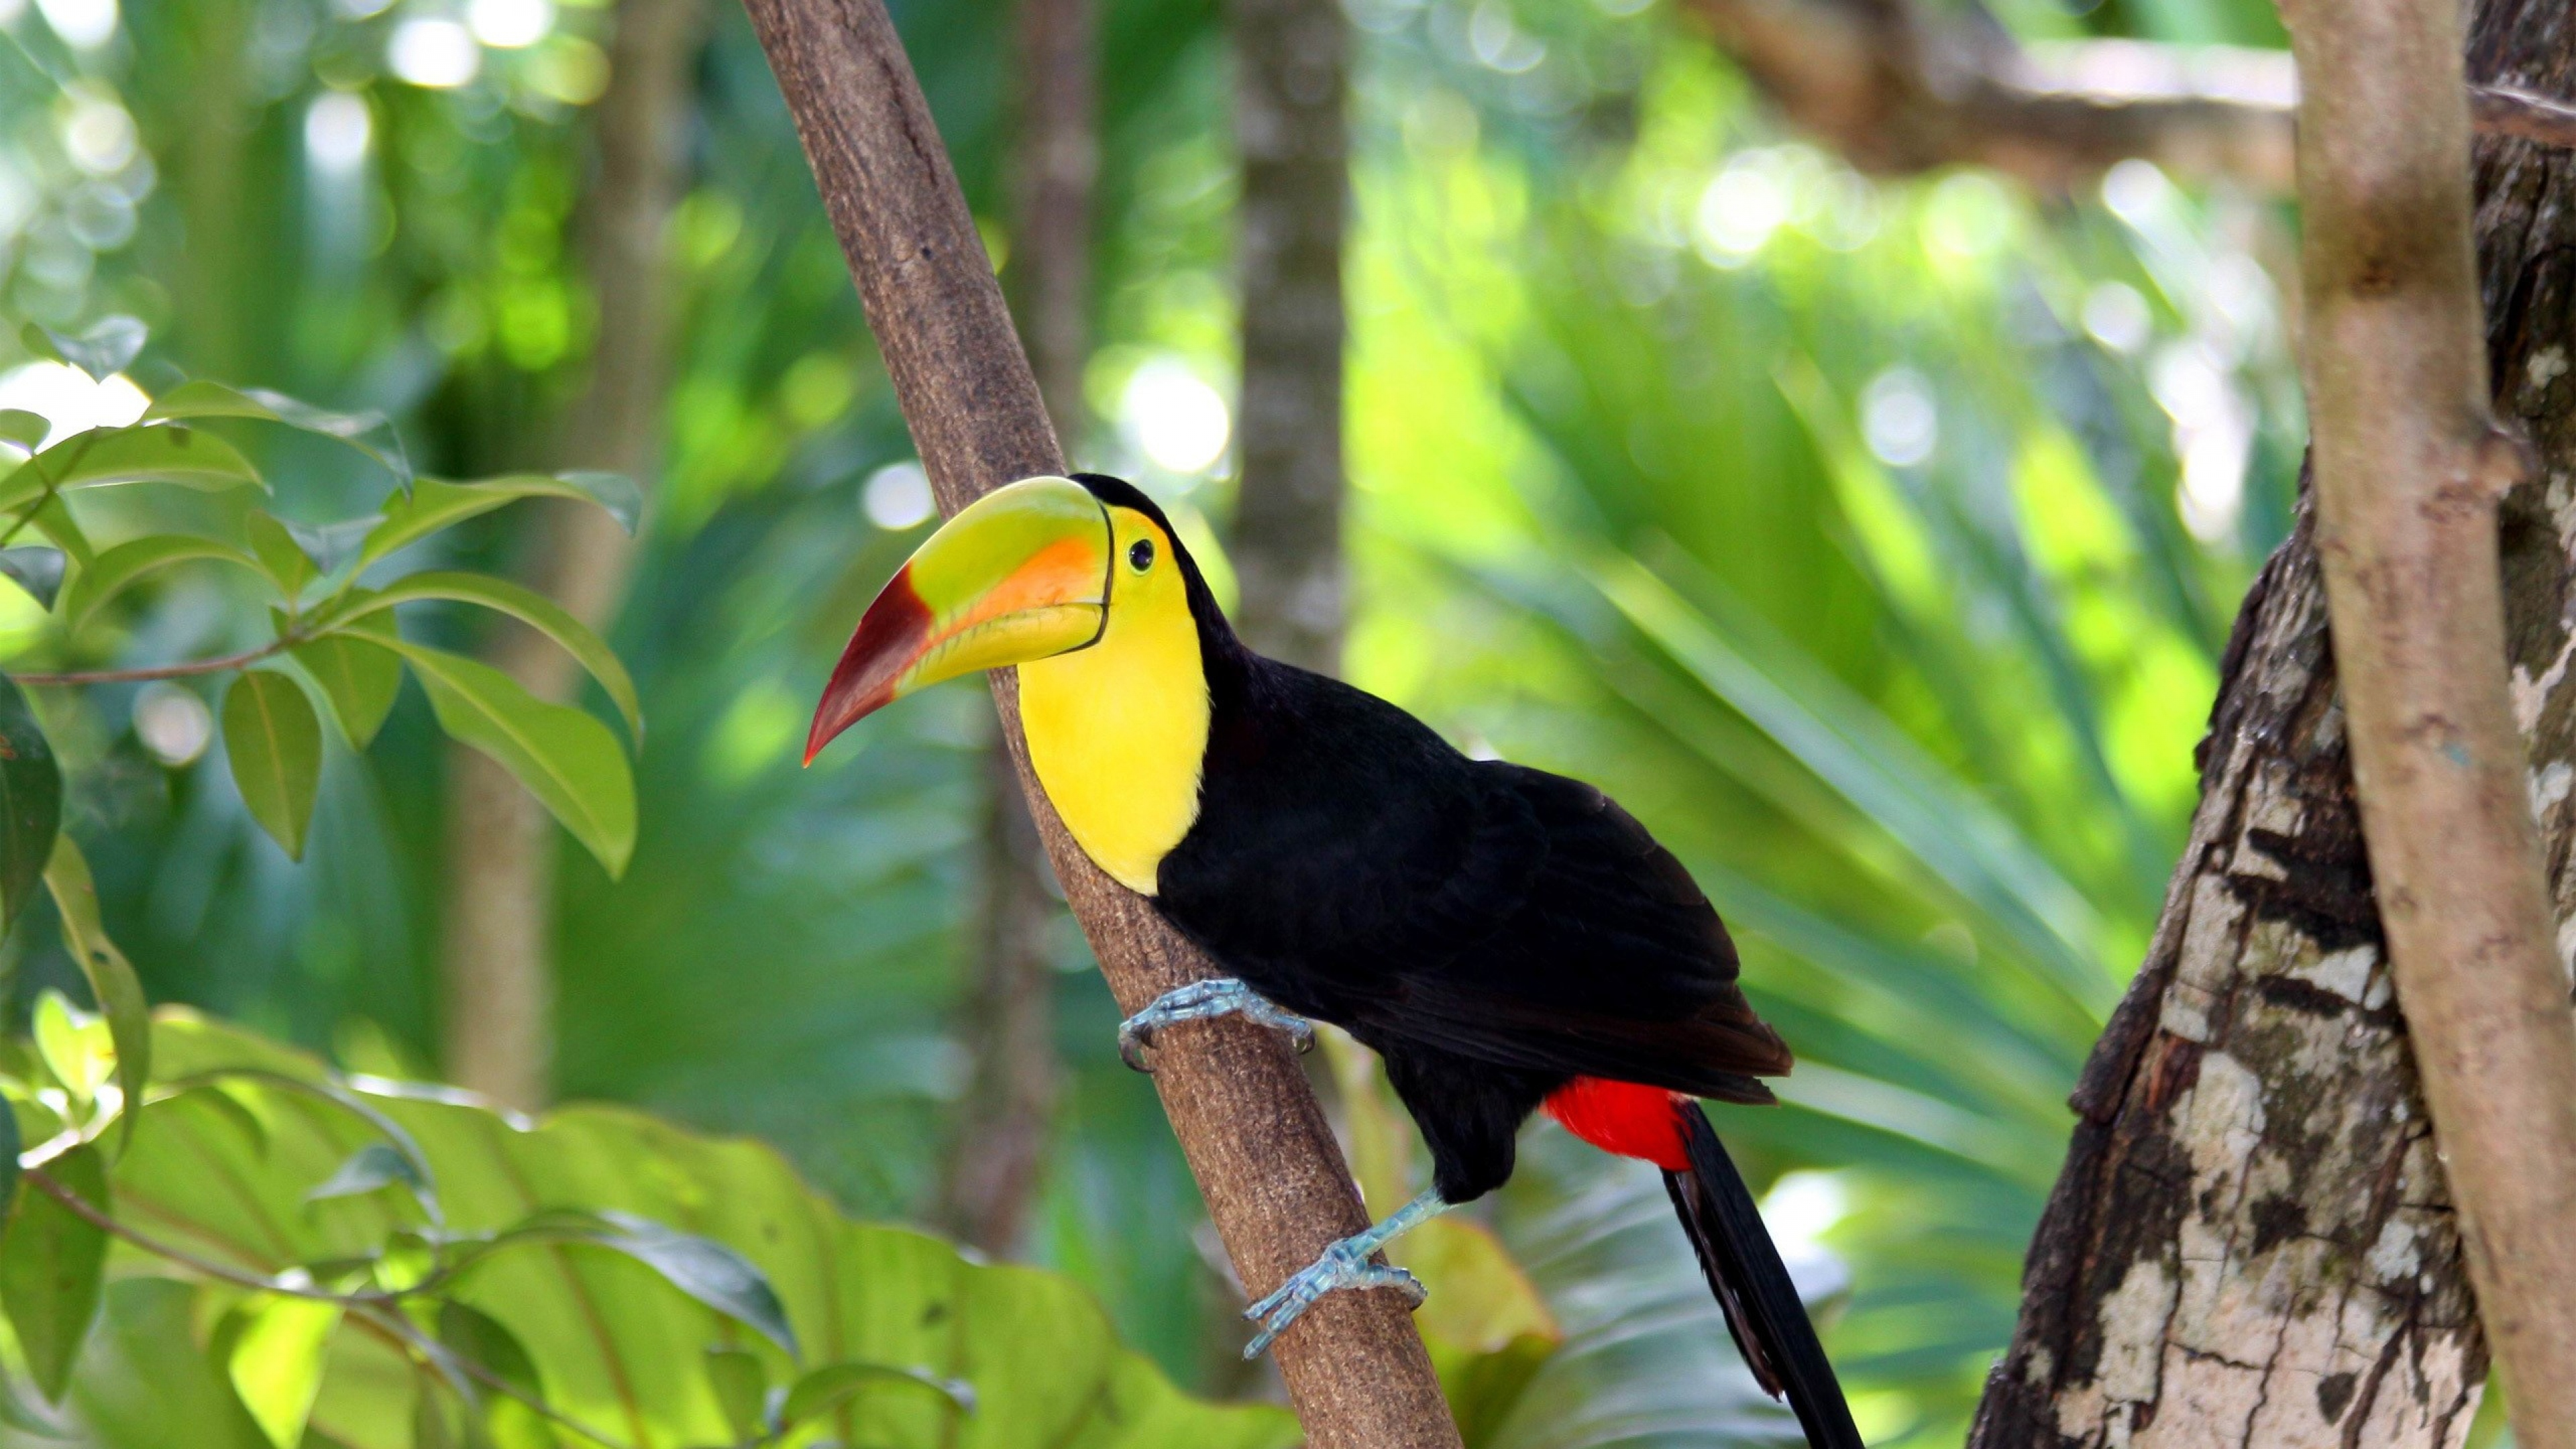 17 Hd Toucan Bird Wallpapers Hdwallsource Com HD Wallpapers Download Free Images Wallpaper [1000image.com]